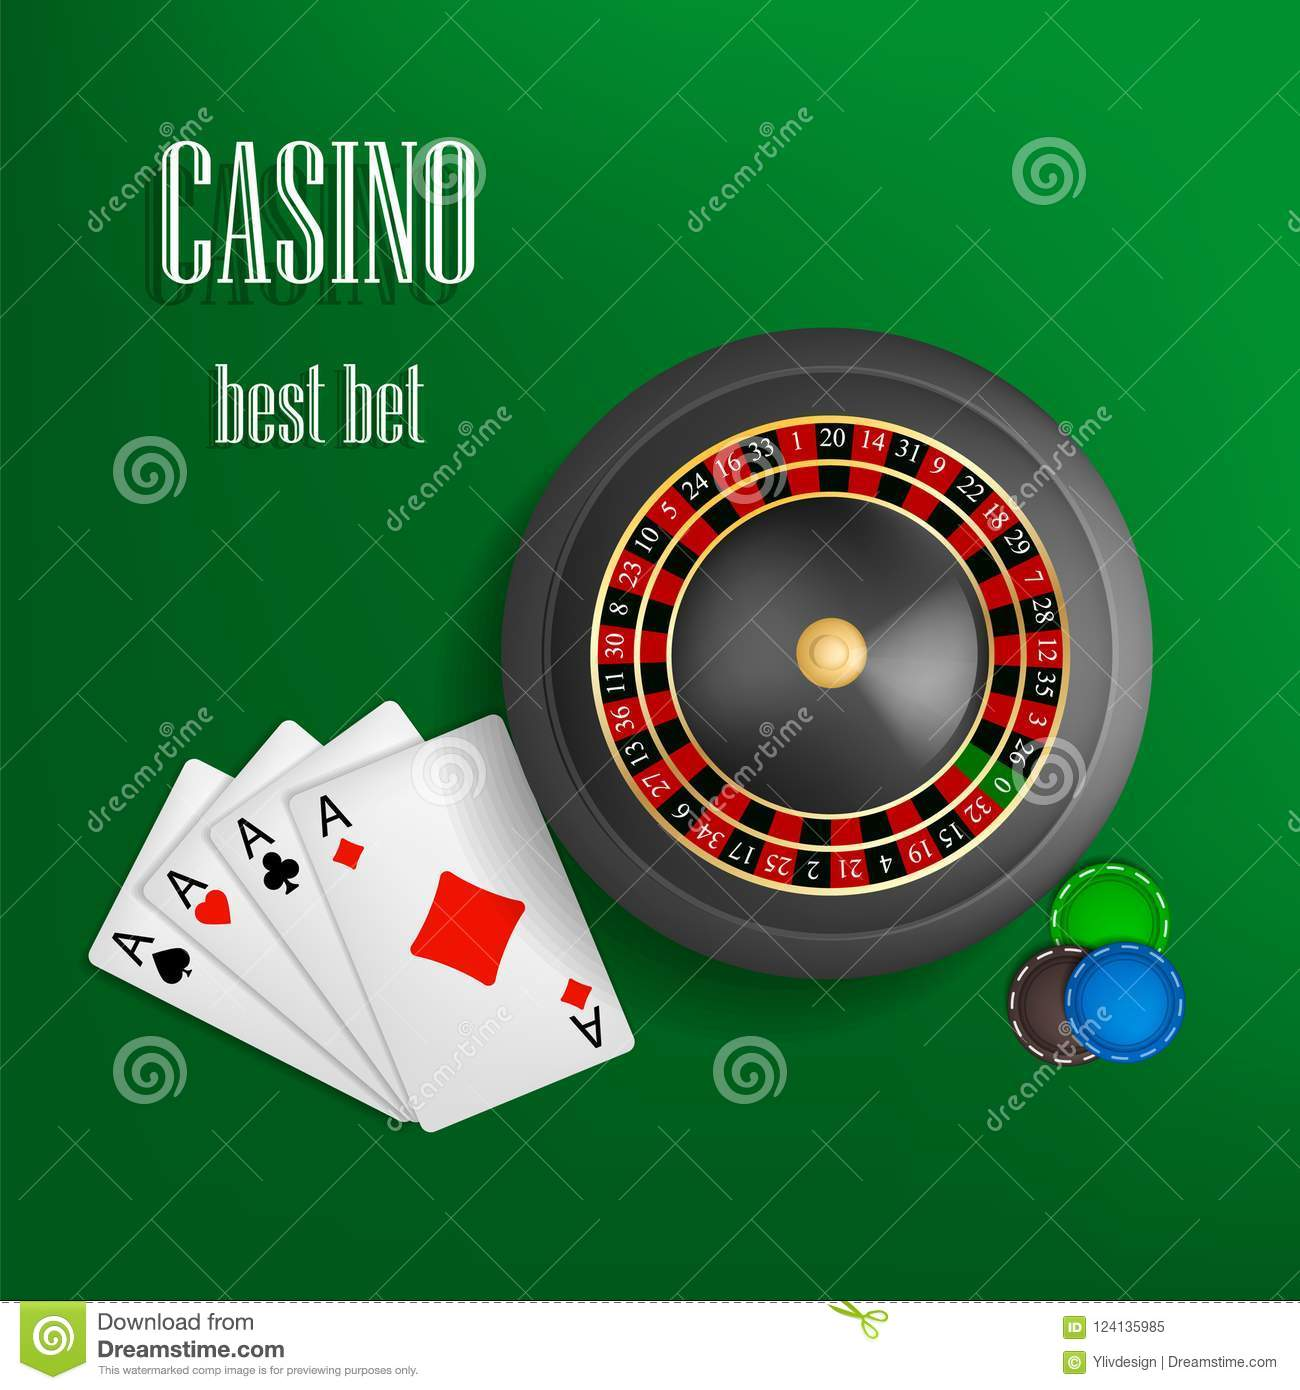 Casino Roulette Best Bet Concept Background Realistic Style Stock